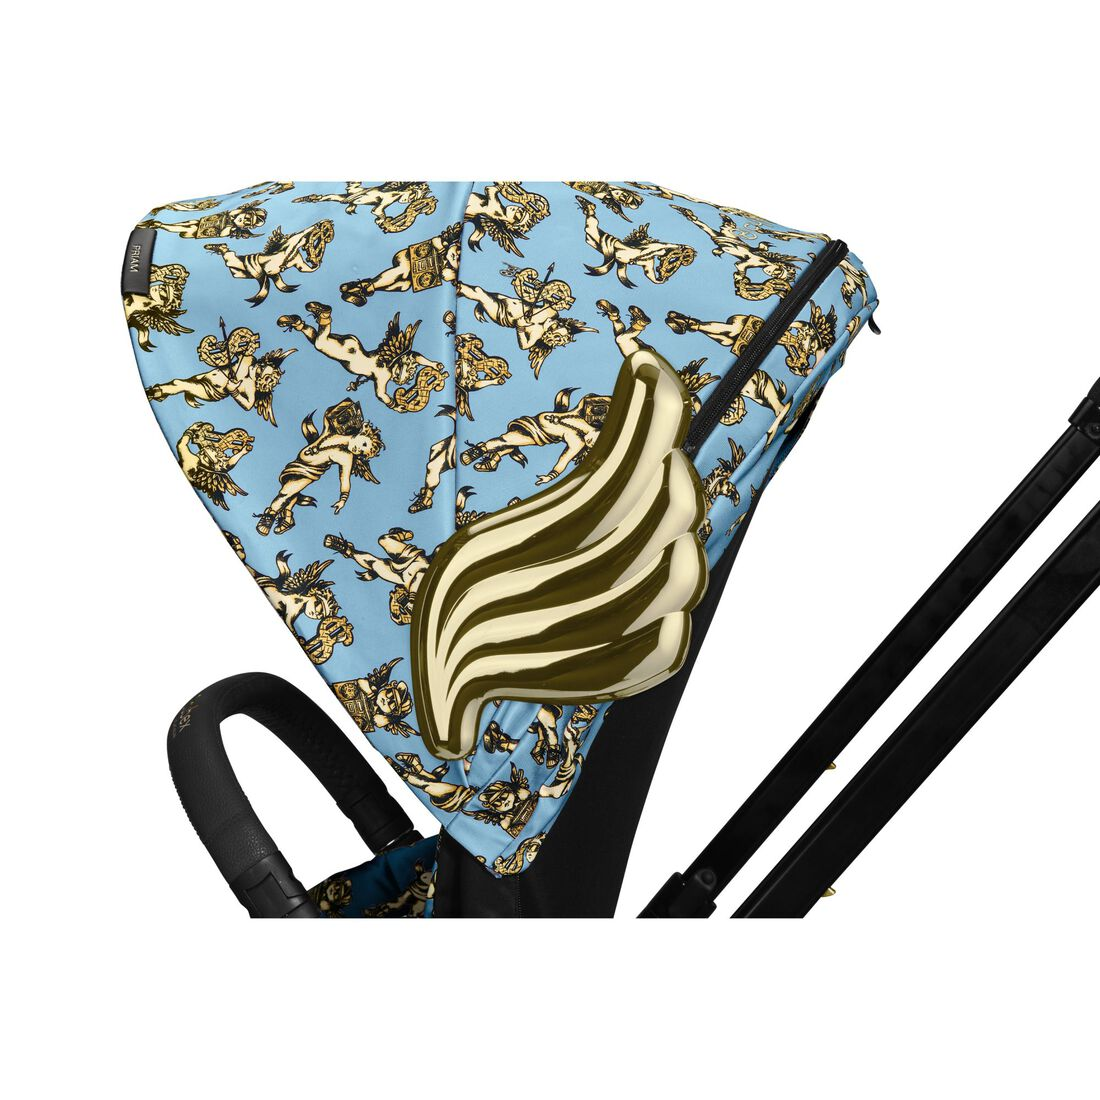 CYBEX Priam Jeremy Scott - Cherubs Blue in Cherubs Blue large Bild 5